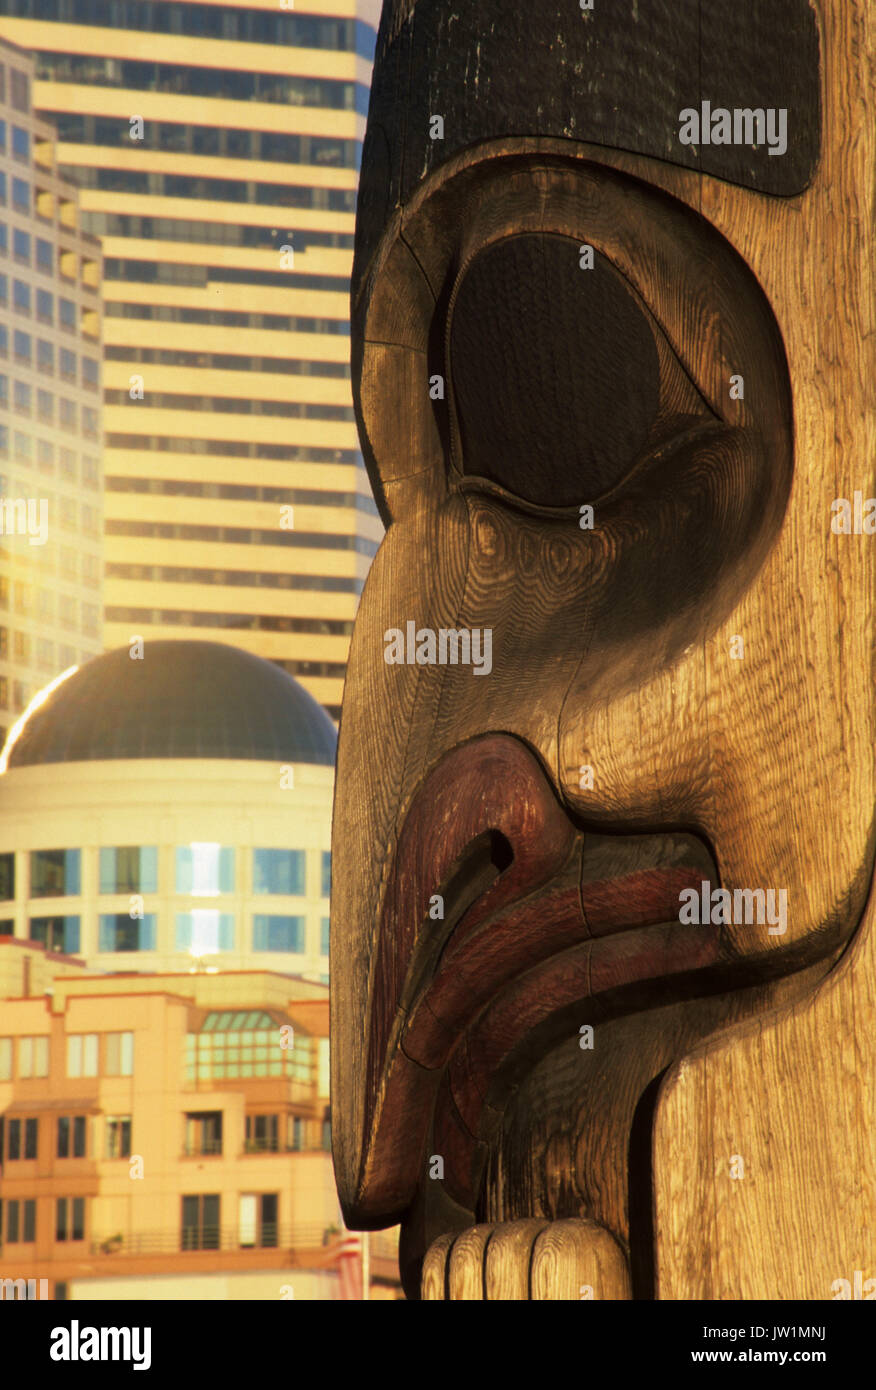 Totem pole with downtown, Victor Steinbrueck Park, Seattle, Washington Stock Photo